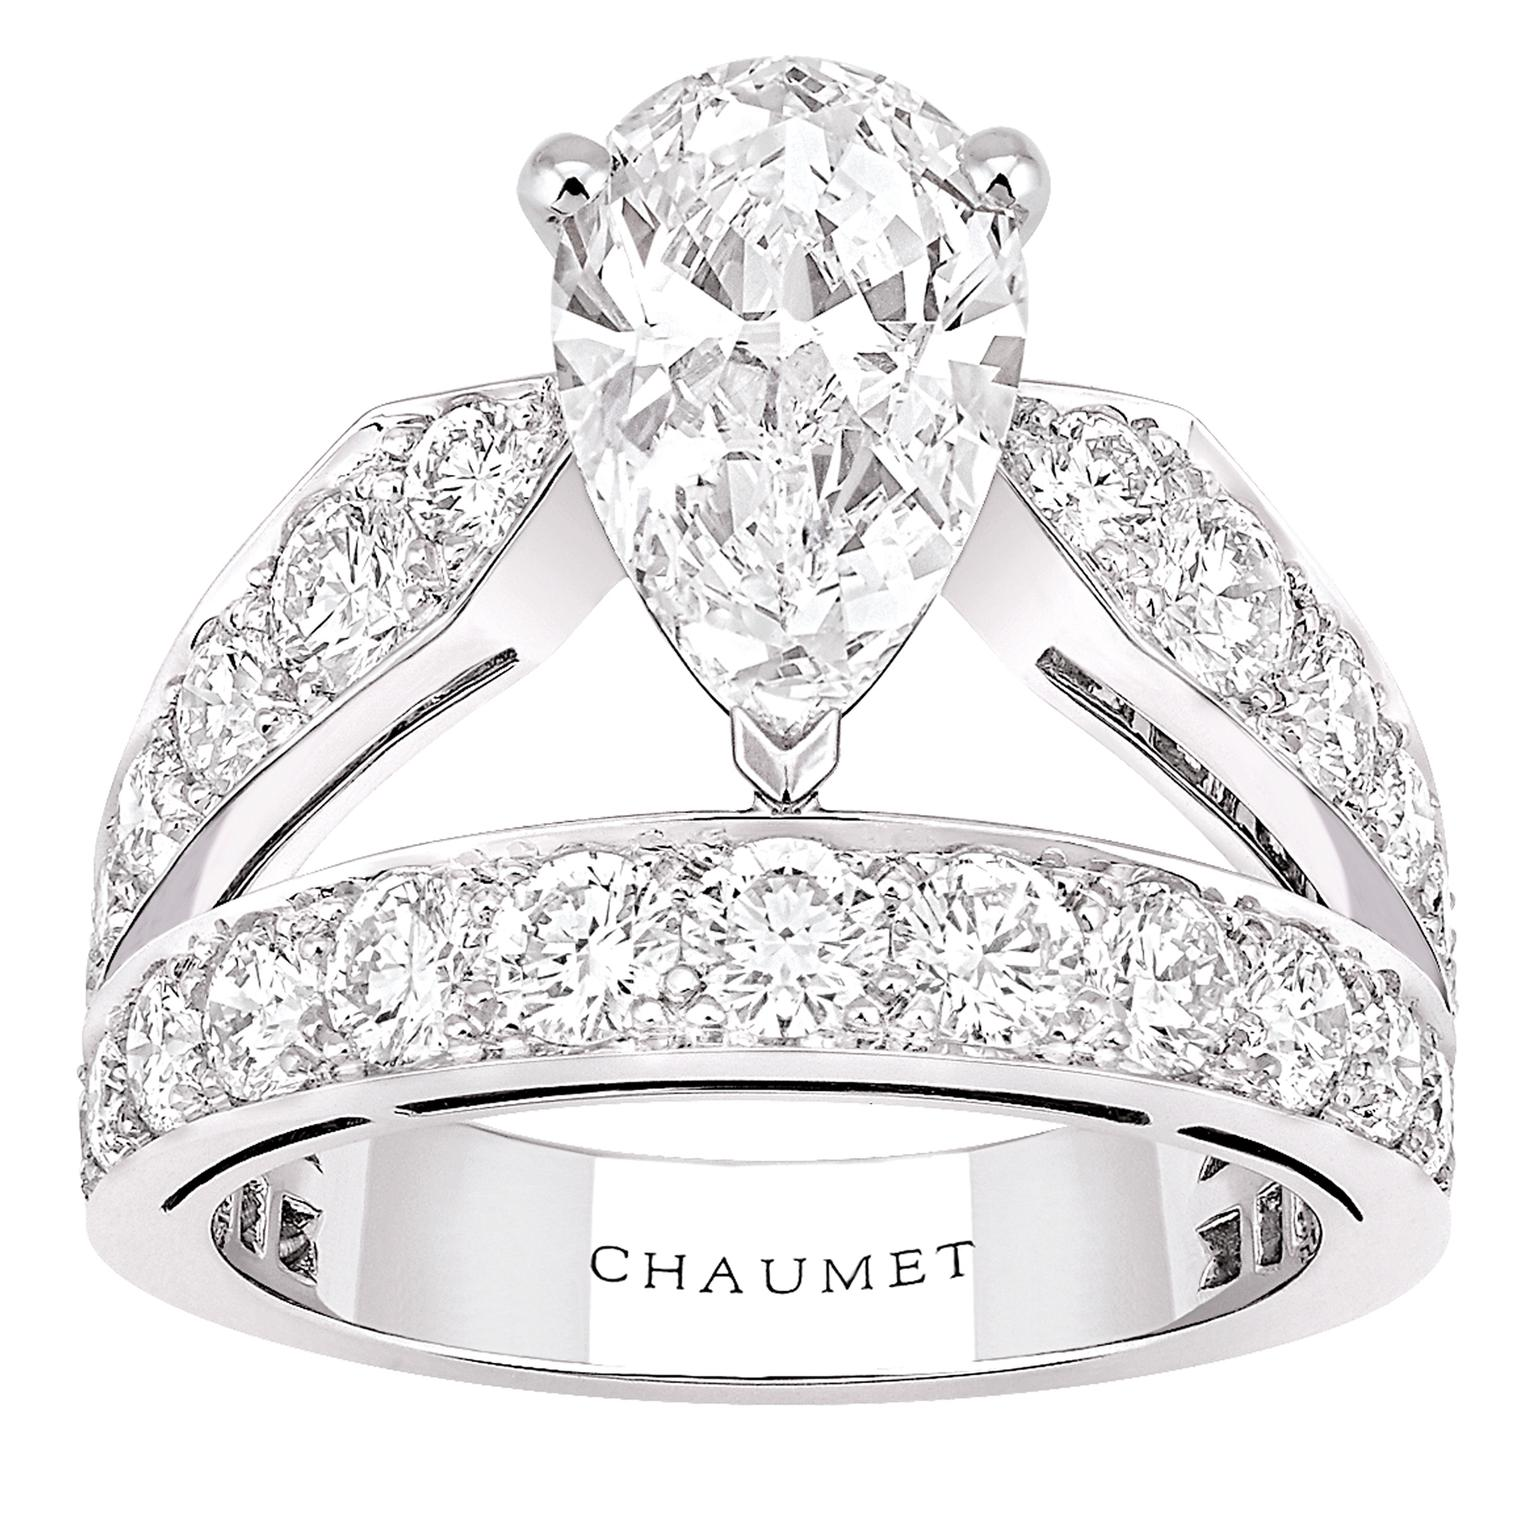 Chaumet Josephine diamond ring_20130408_large